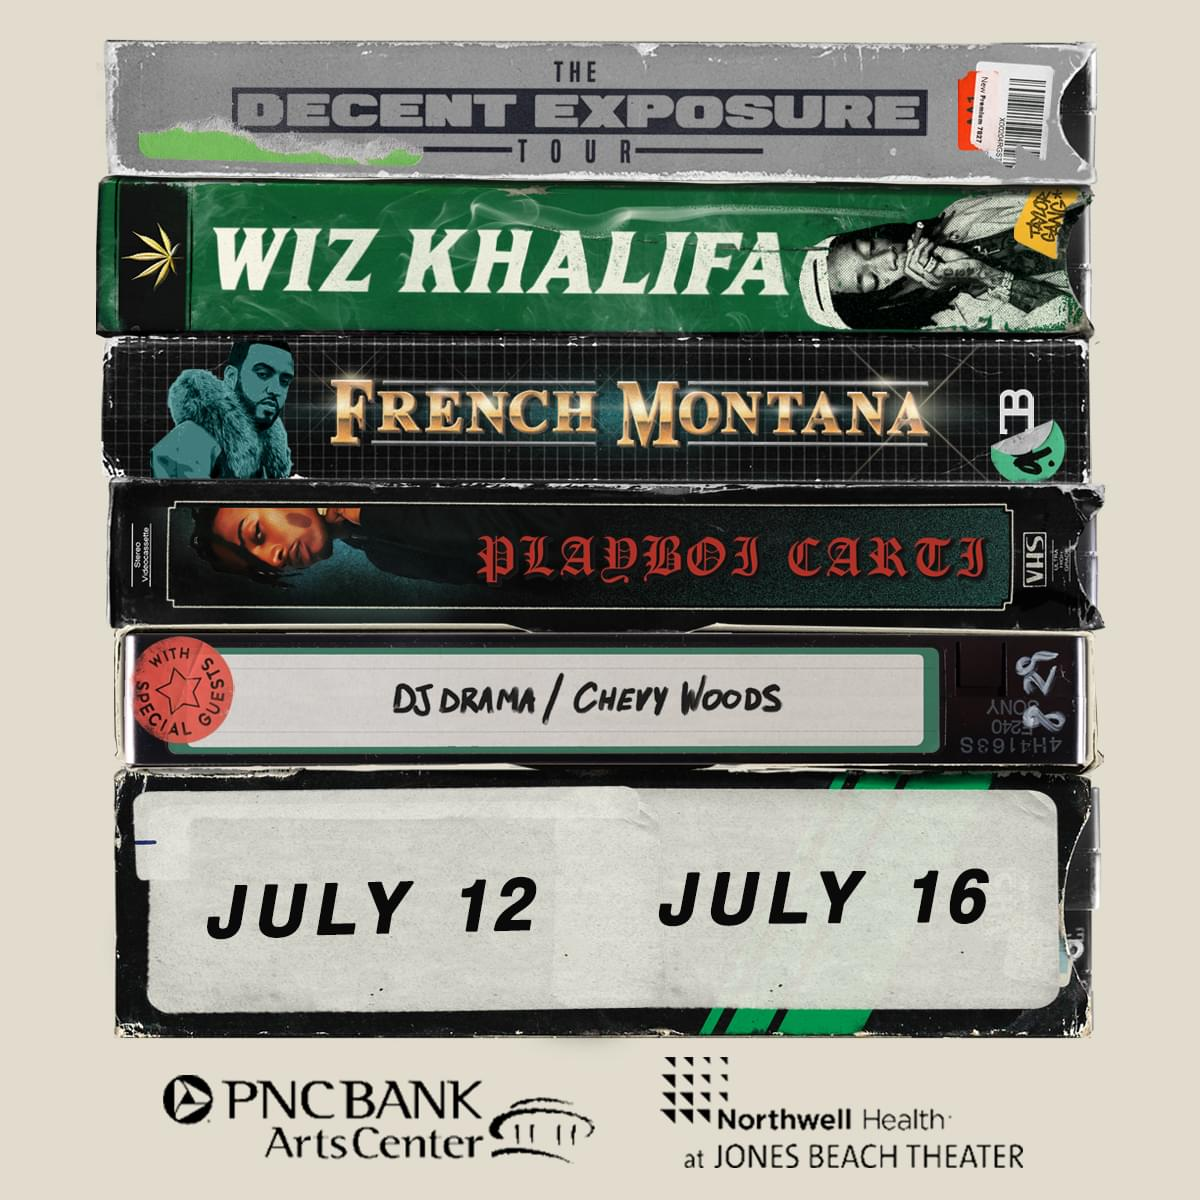 Win Tickets to Wiz Khalifa's The Decent Exposure Tour!